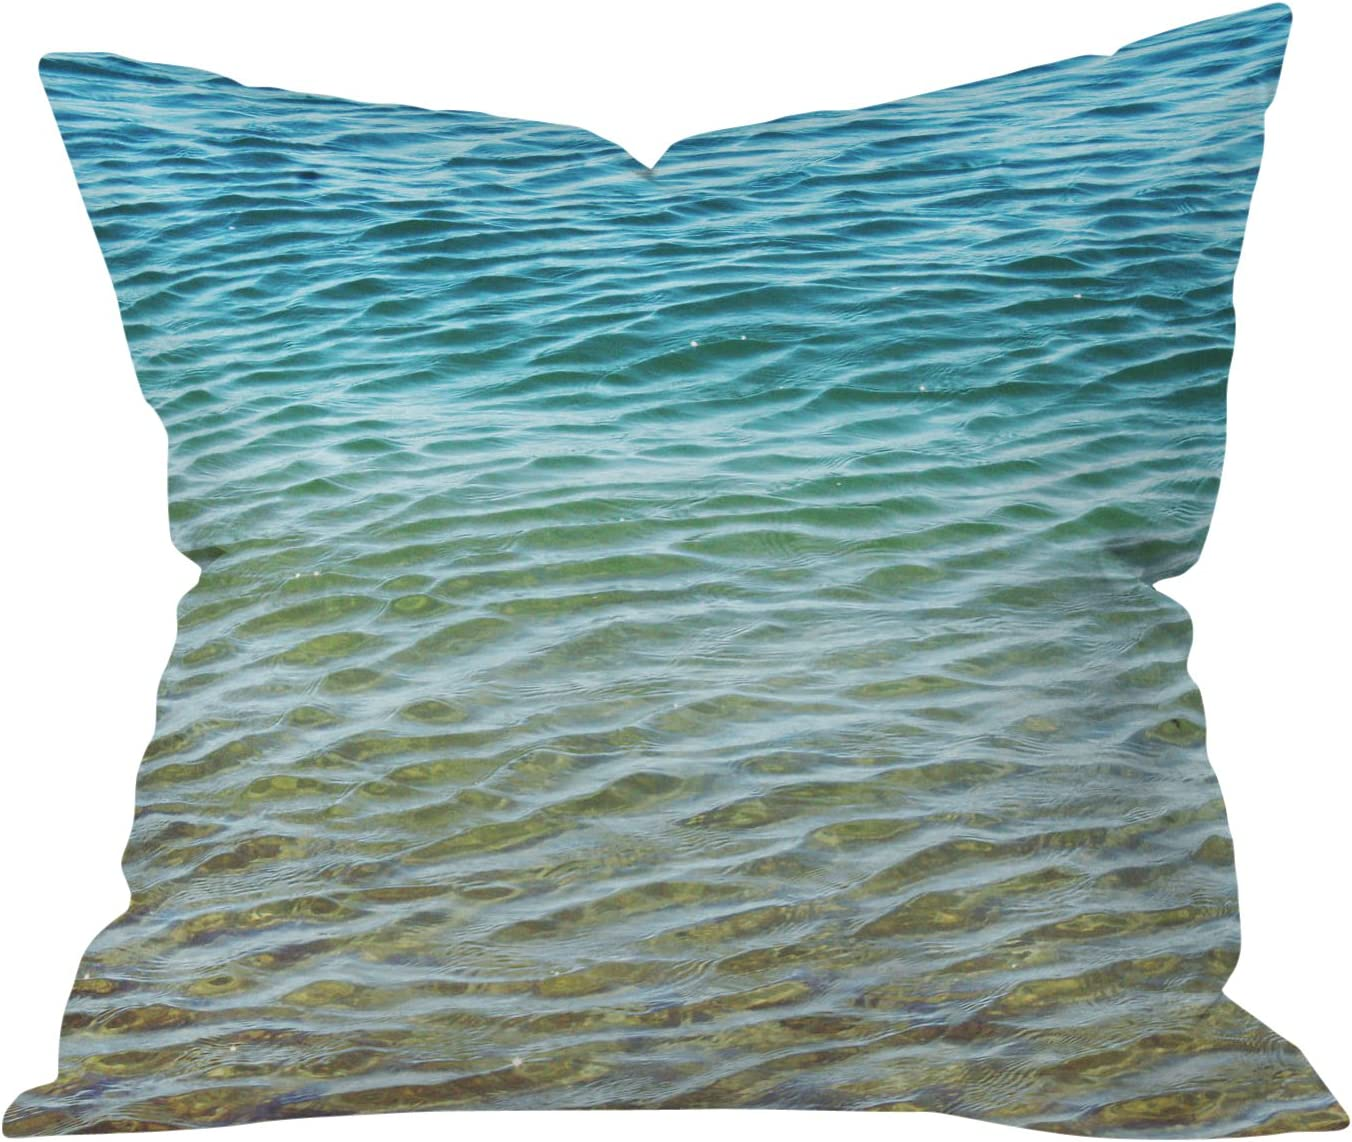 Deny Designs Shannon Clark Ombre Sea Throw Pillow, 26 x 26